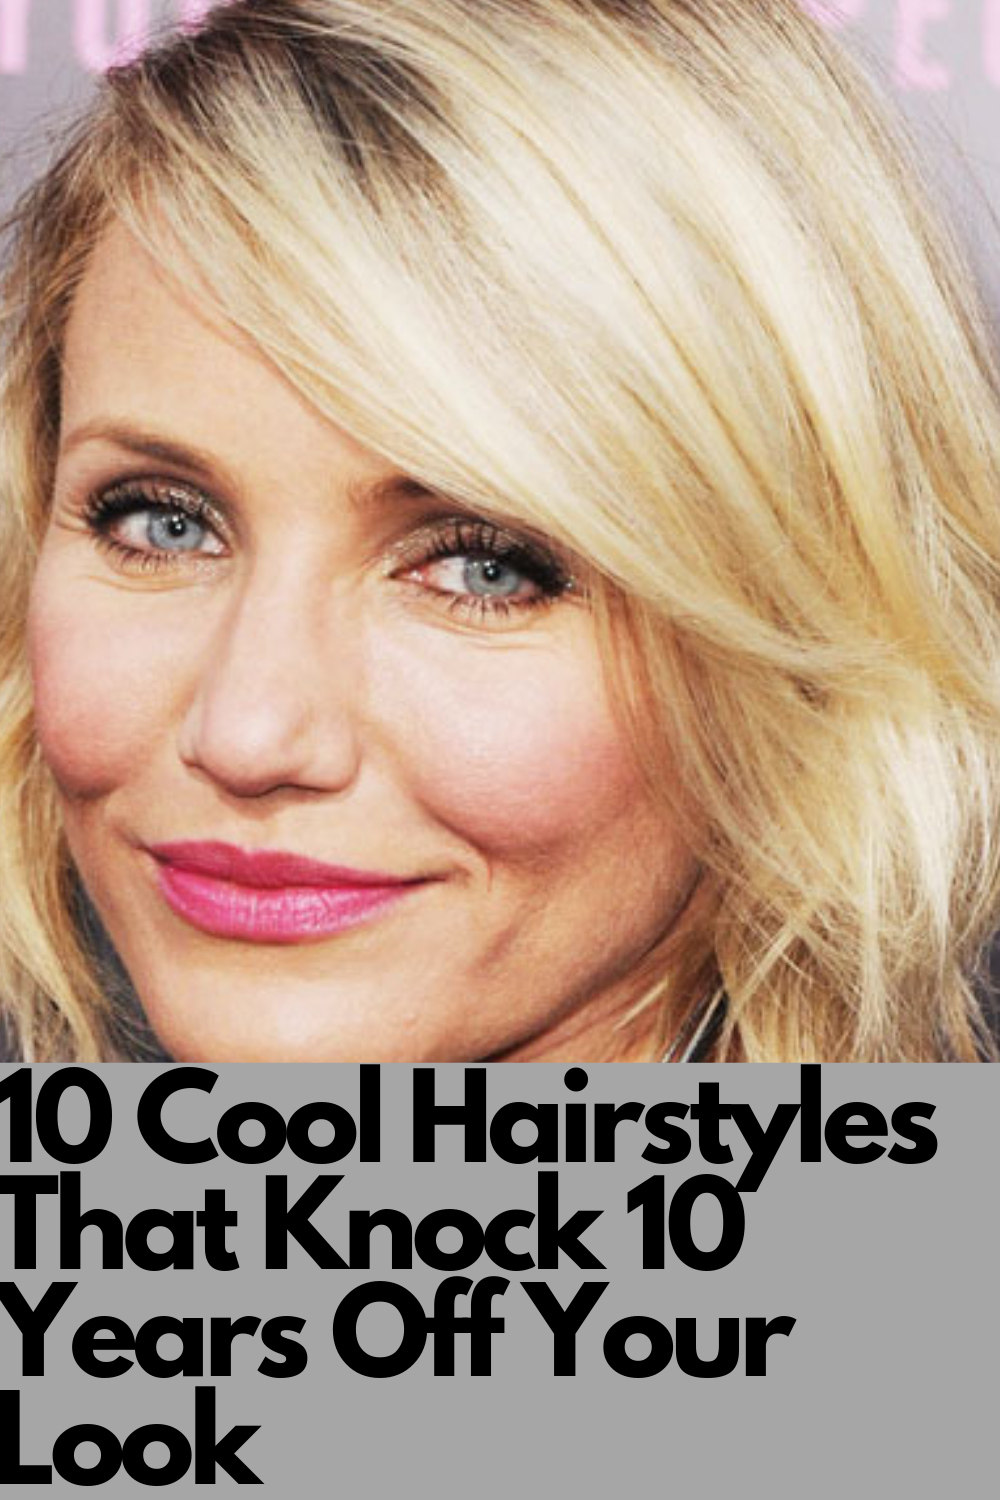 10 Cool Hairstyles That Knock 10 Years Off Your Look Cool Hairstyles Kris Jenner Hair Hair Styles